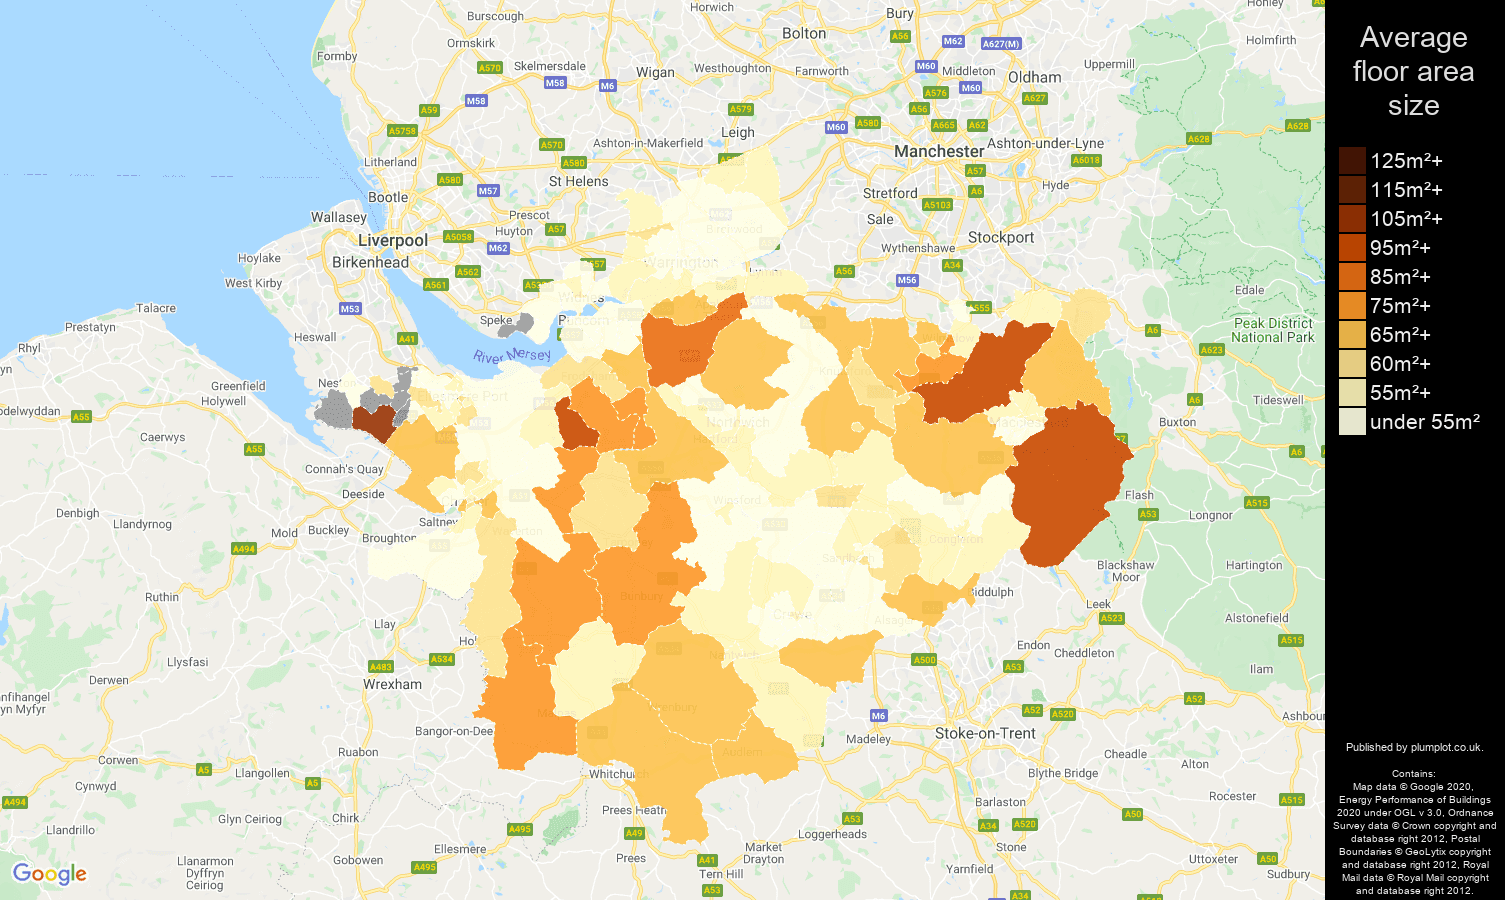 Cheshire map of average floor area size of flats